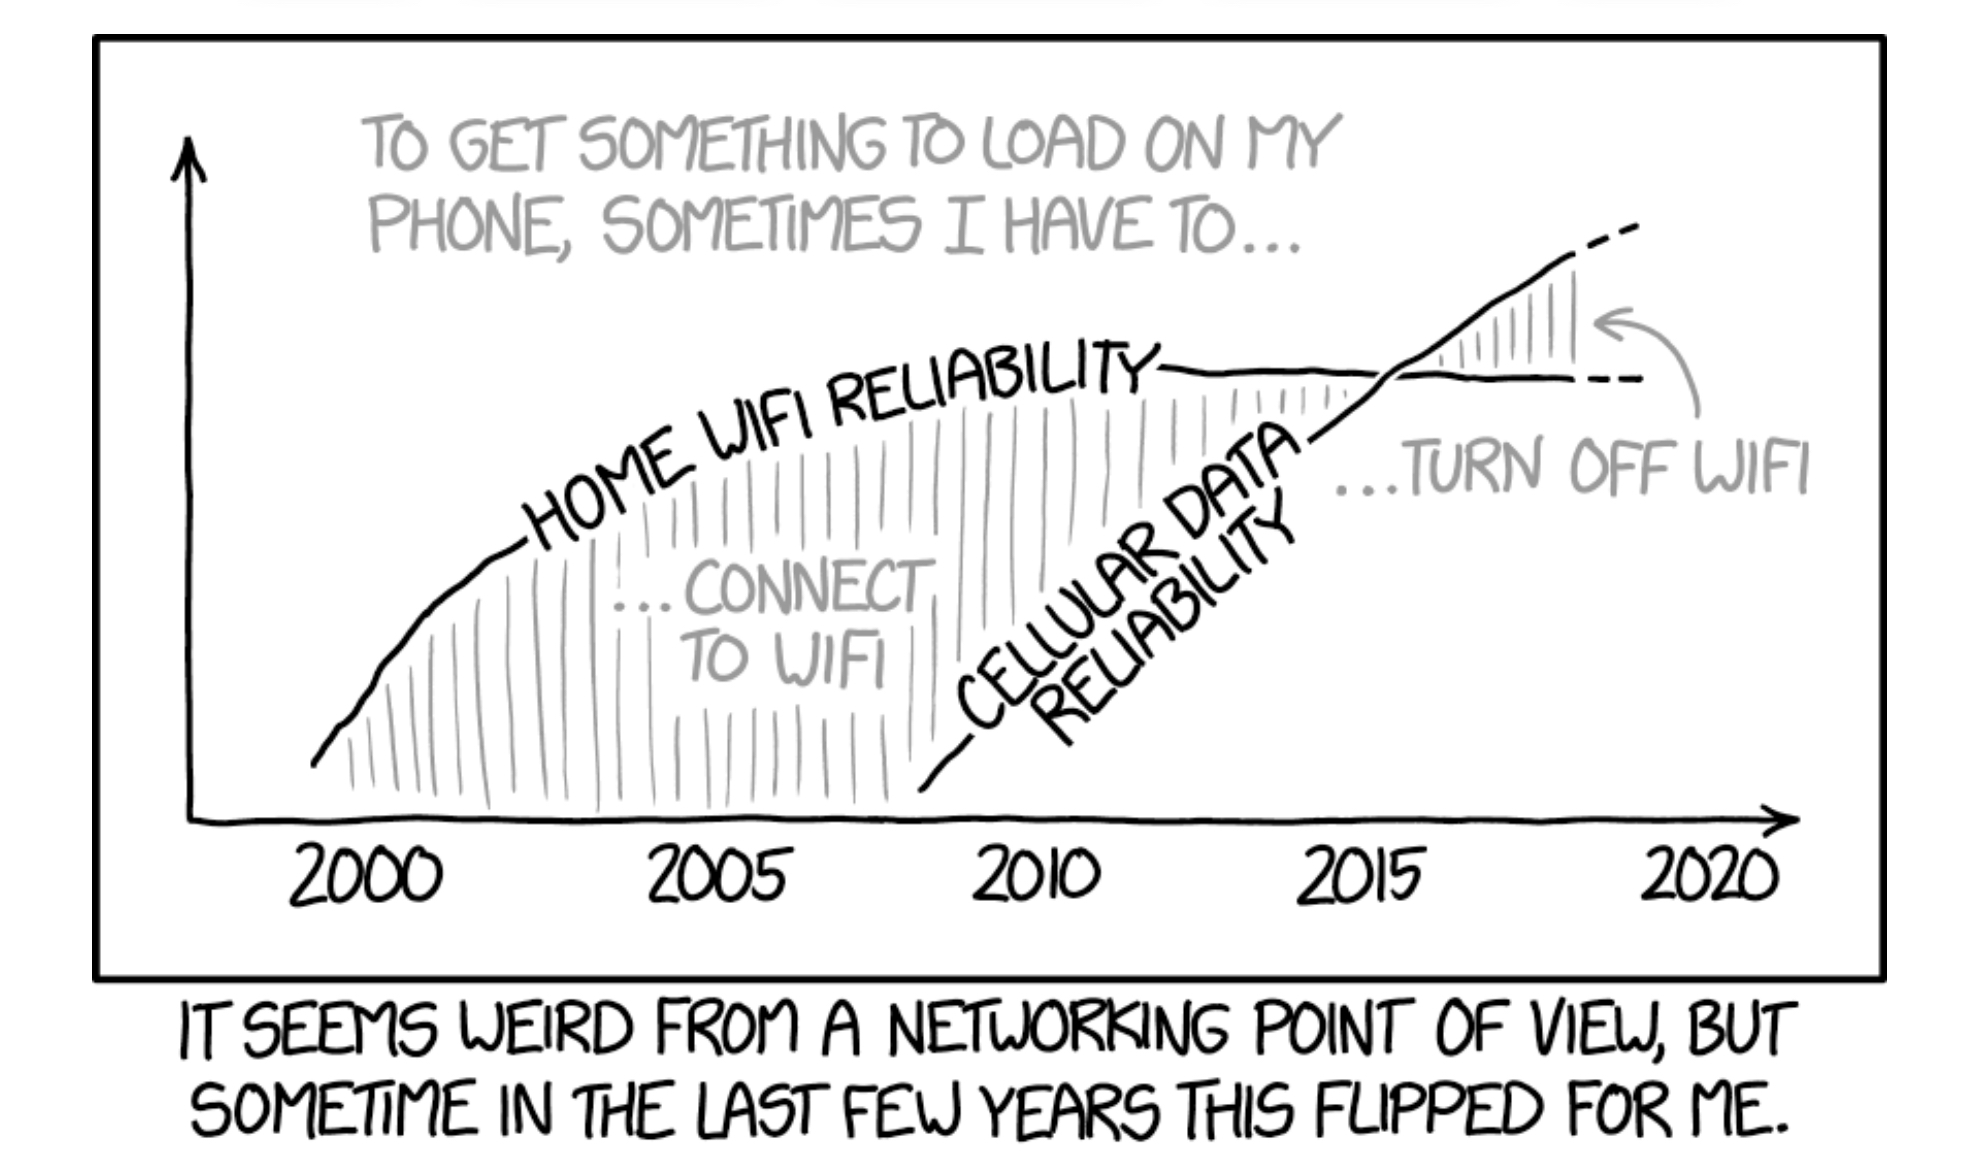 WIFI vs Cellular (xkcd 1865)